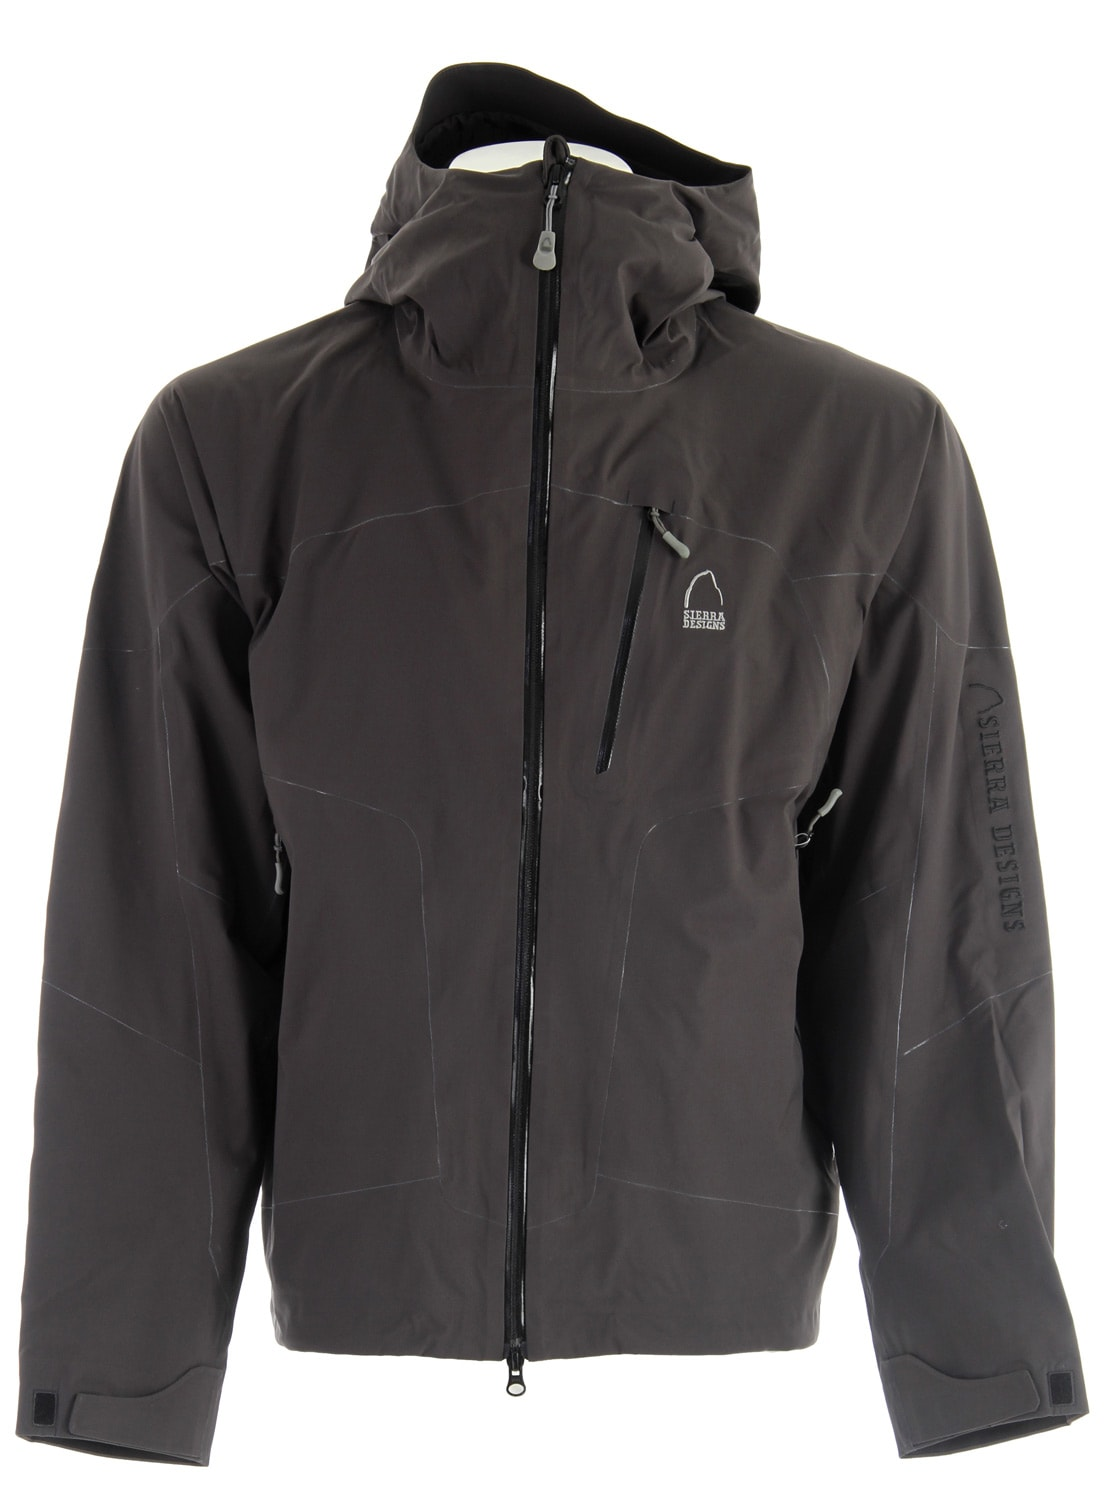 Shop for Sierra Designs Mantra Fusion Ski Jacket Black - Men's